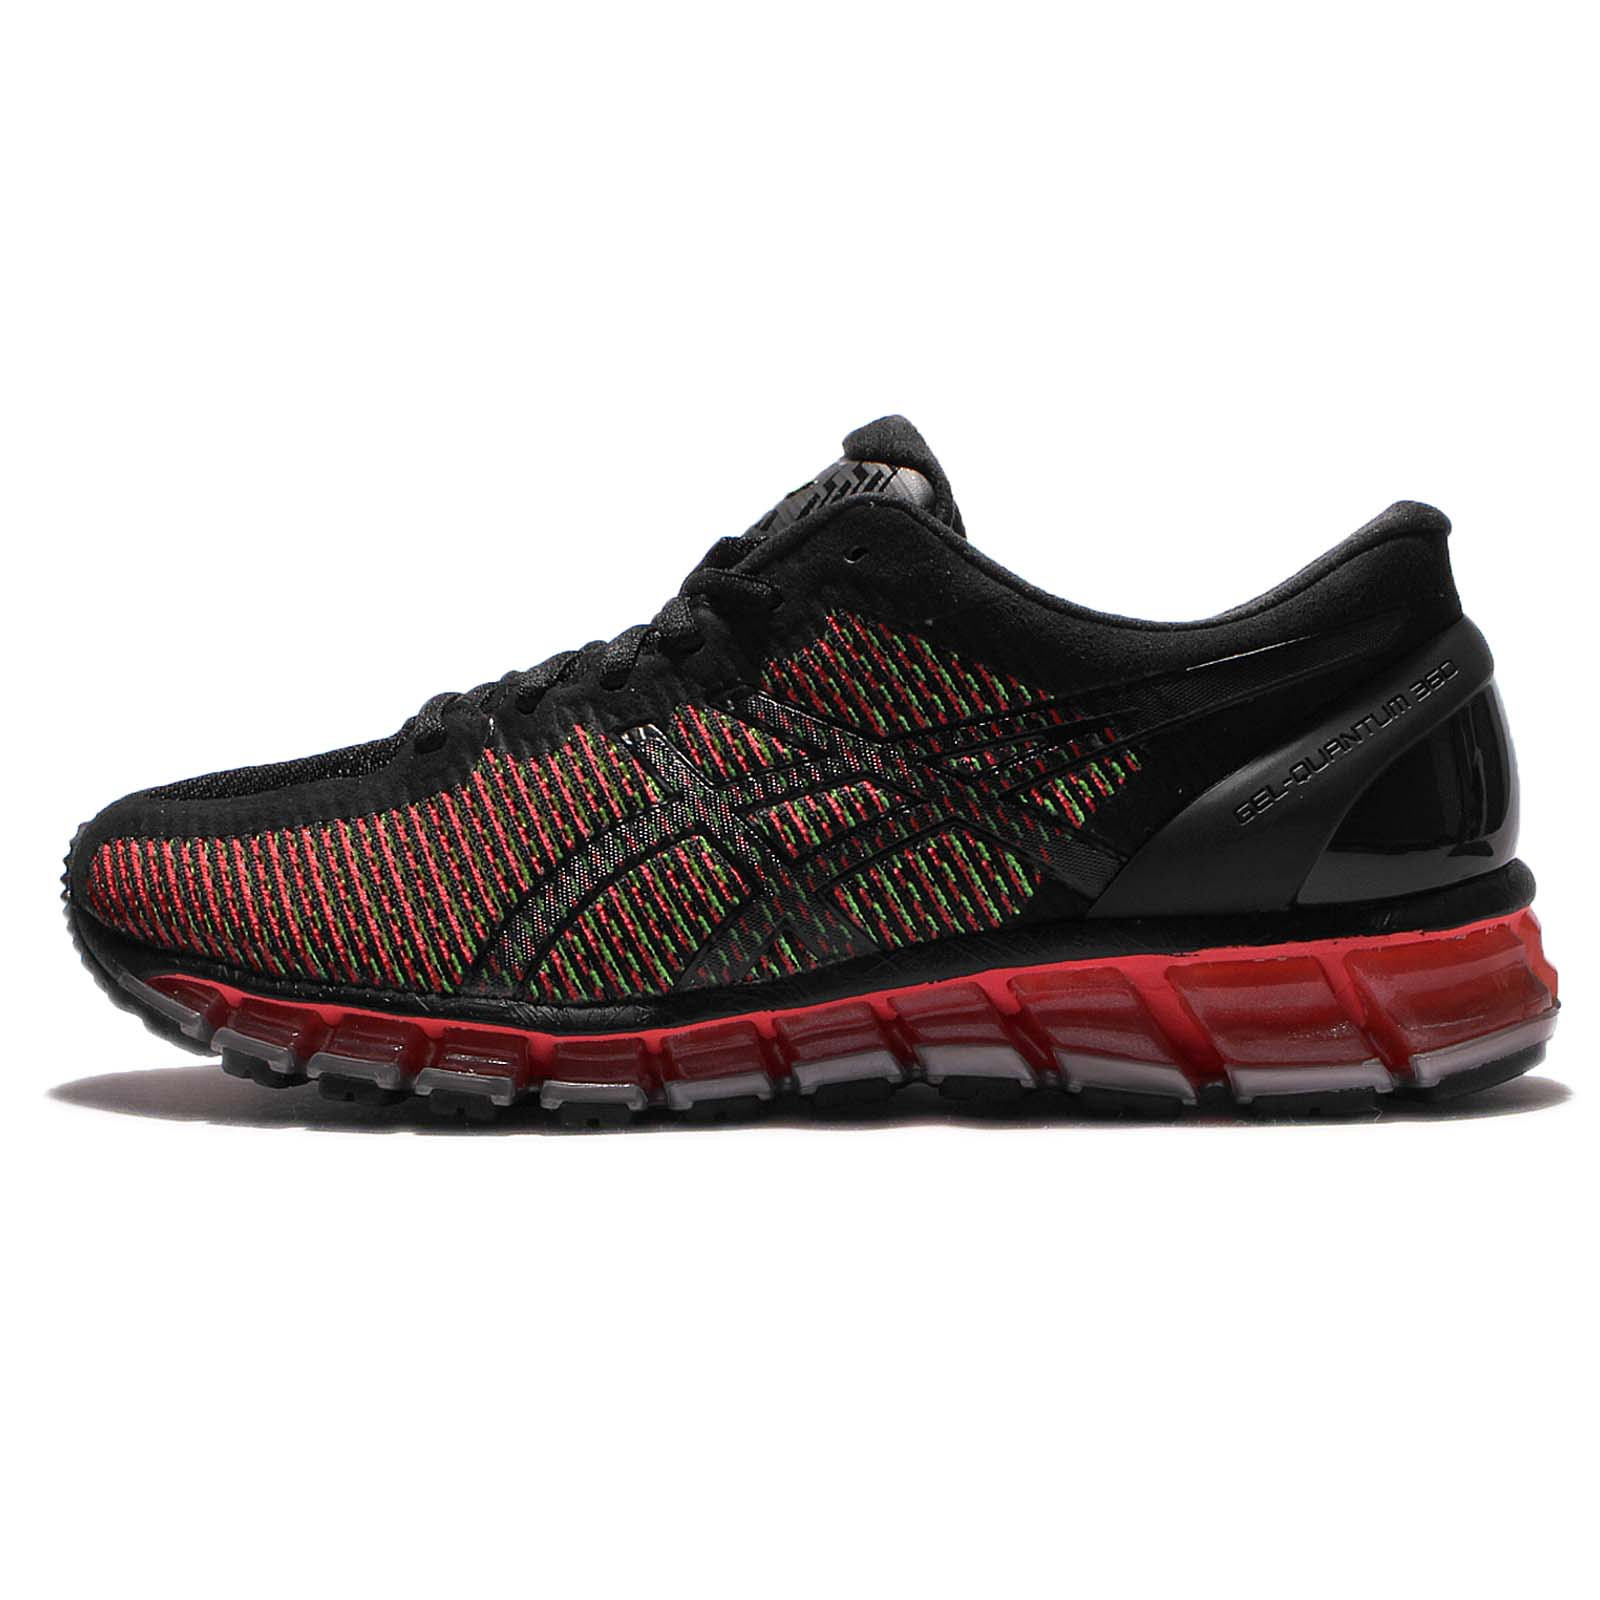 Asics Gel Quantum 360 CM Chameleon Black Red Men Cushion Running Shoe T6G1N 9001